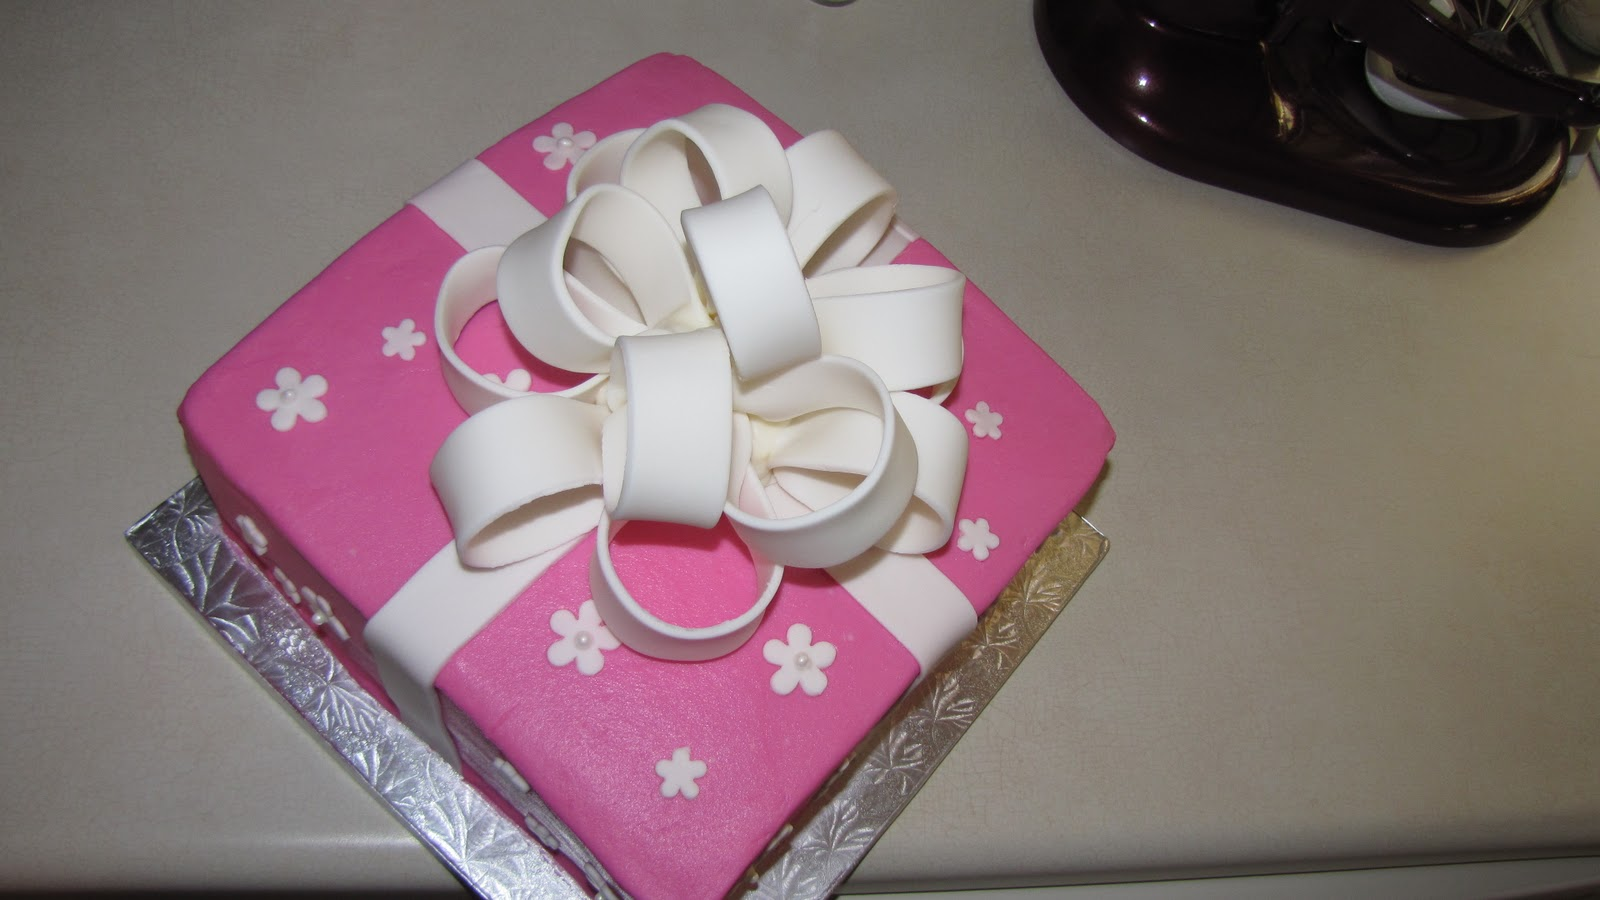 Cake Decorating Tips And Tricks For Beginners : Decorating Tips, Tricks, and Ideas: Pink Gift Cake